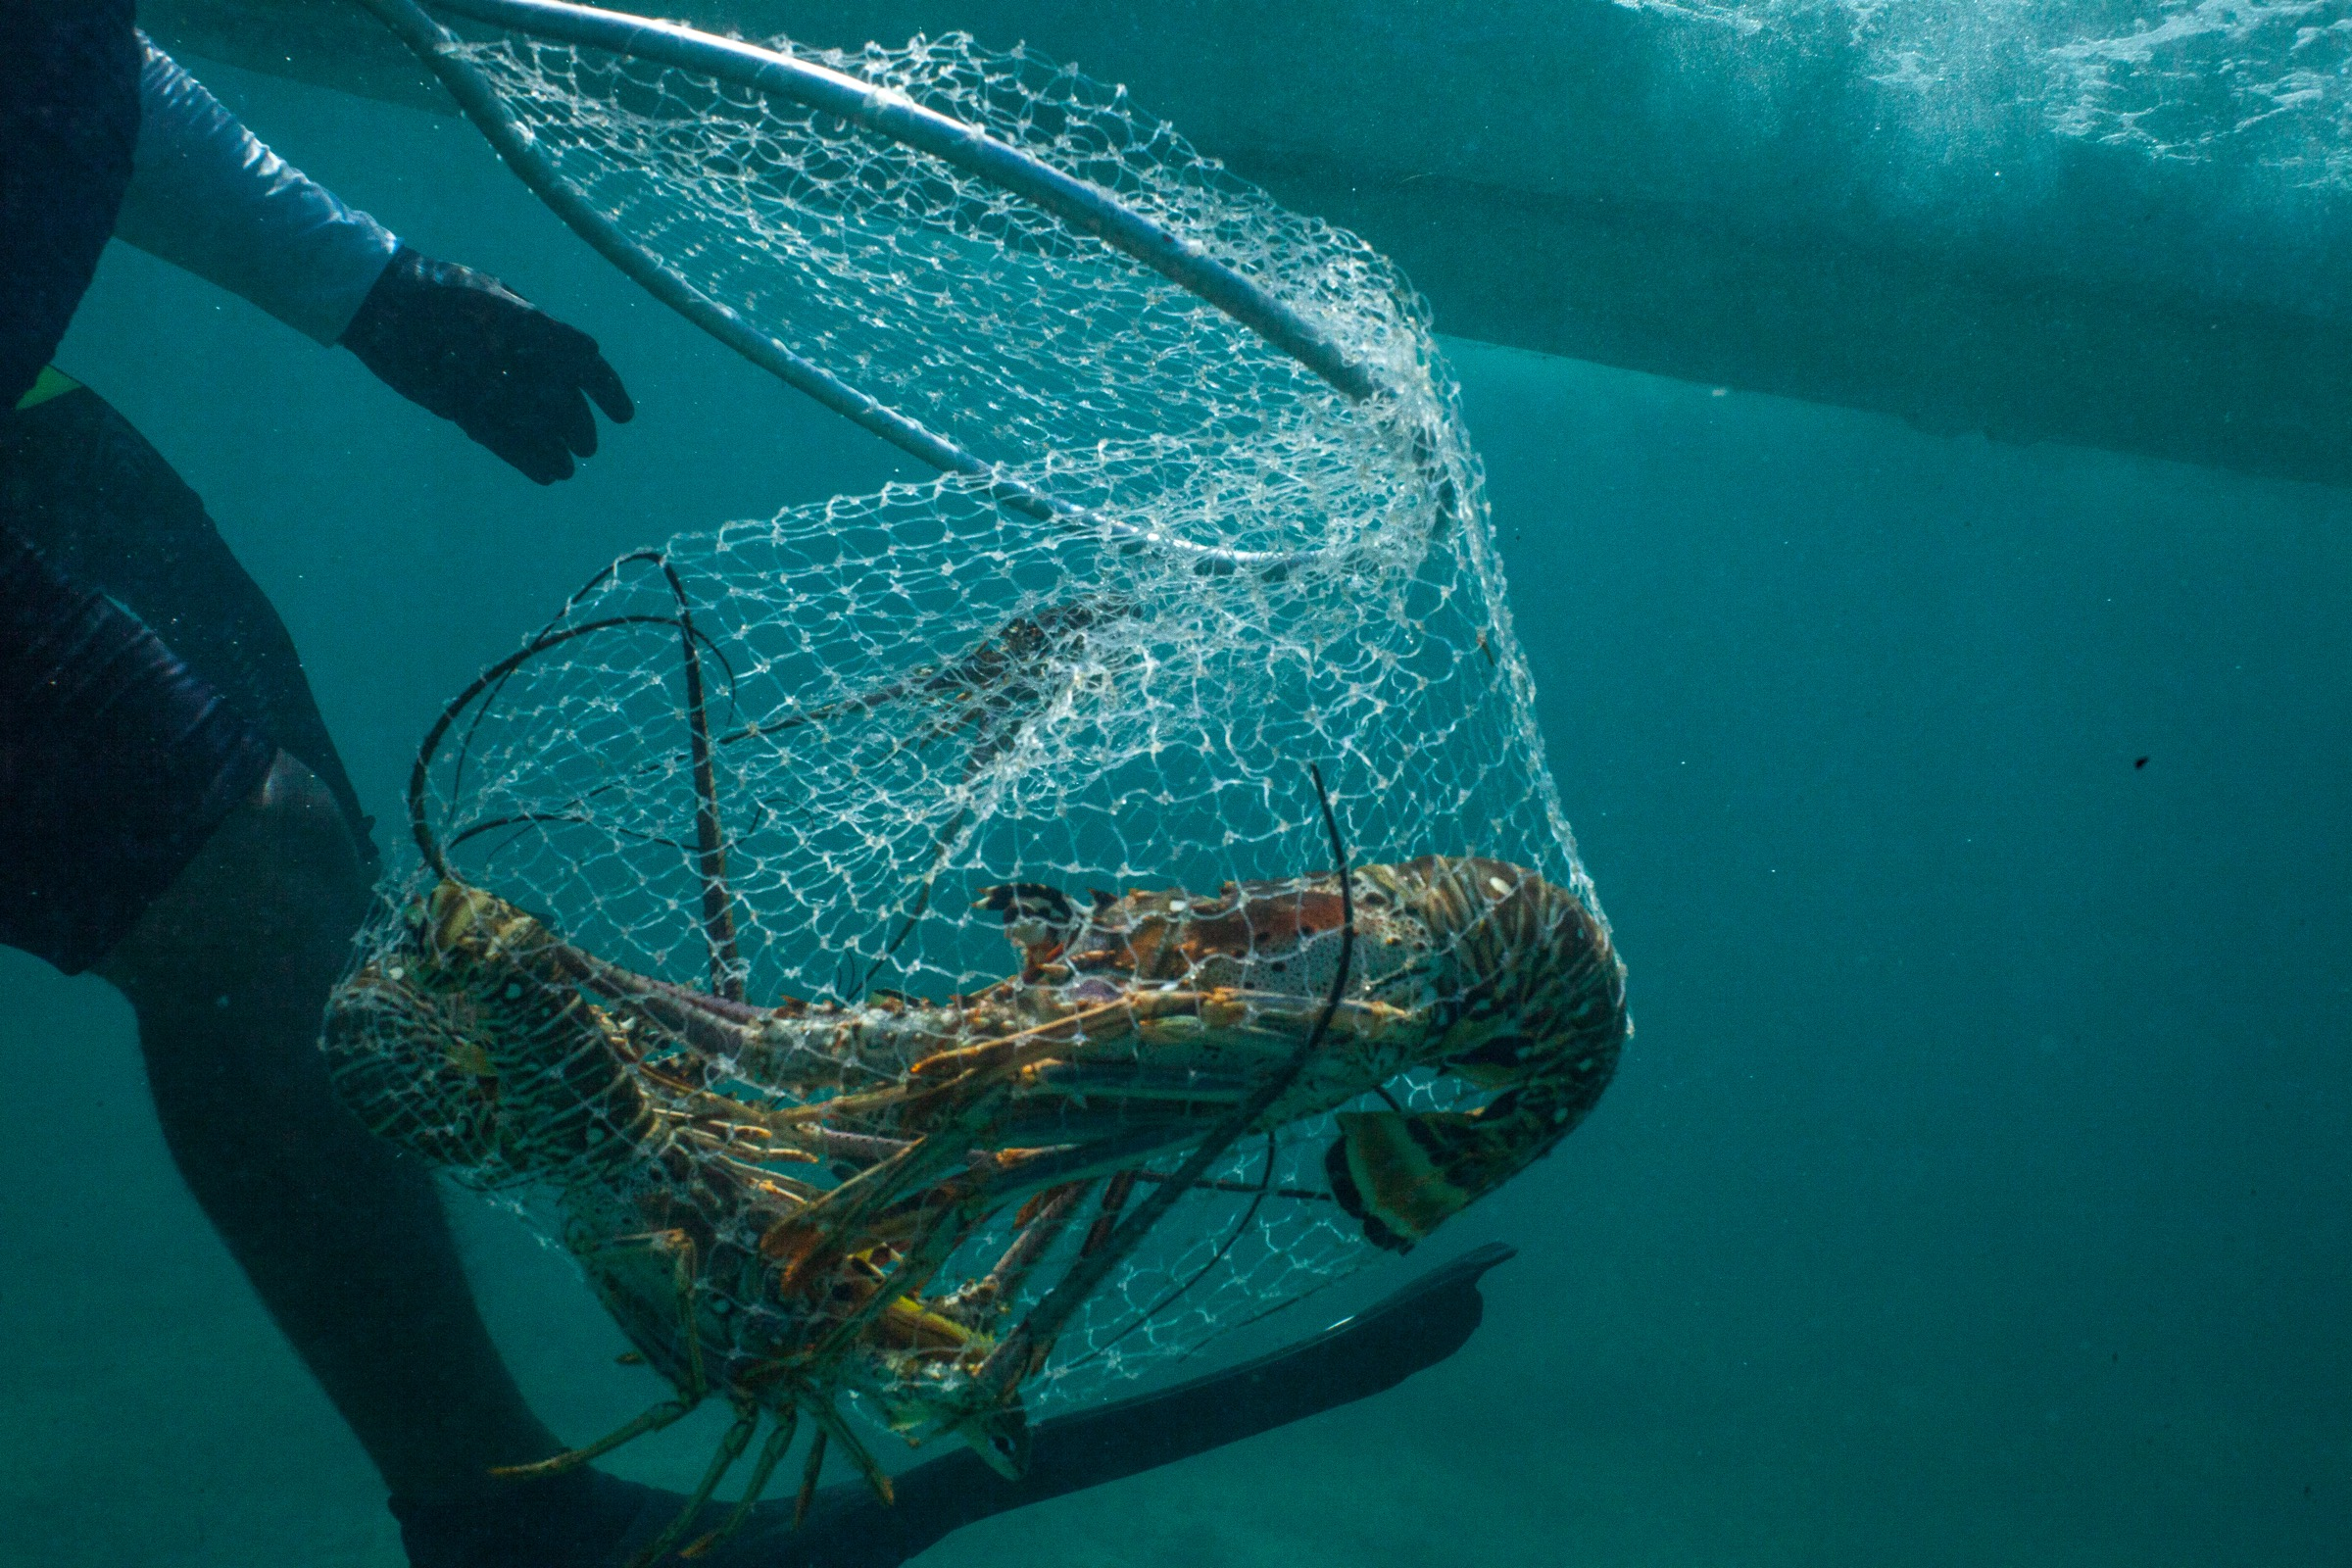 Magdiel Naal hauls a net full of lobsters up to a lancha off Punta Allen, Mexico. Photograph by Dominic Bracco II